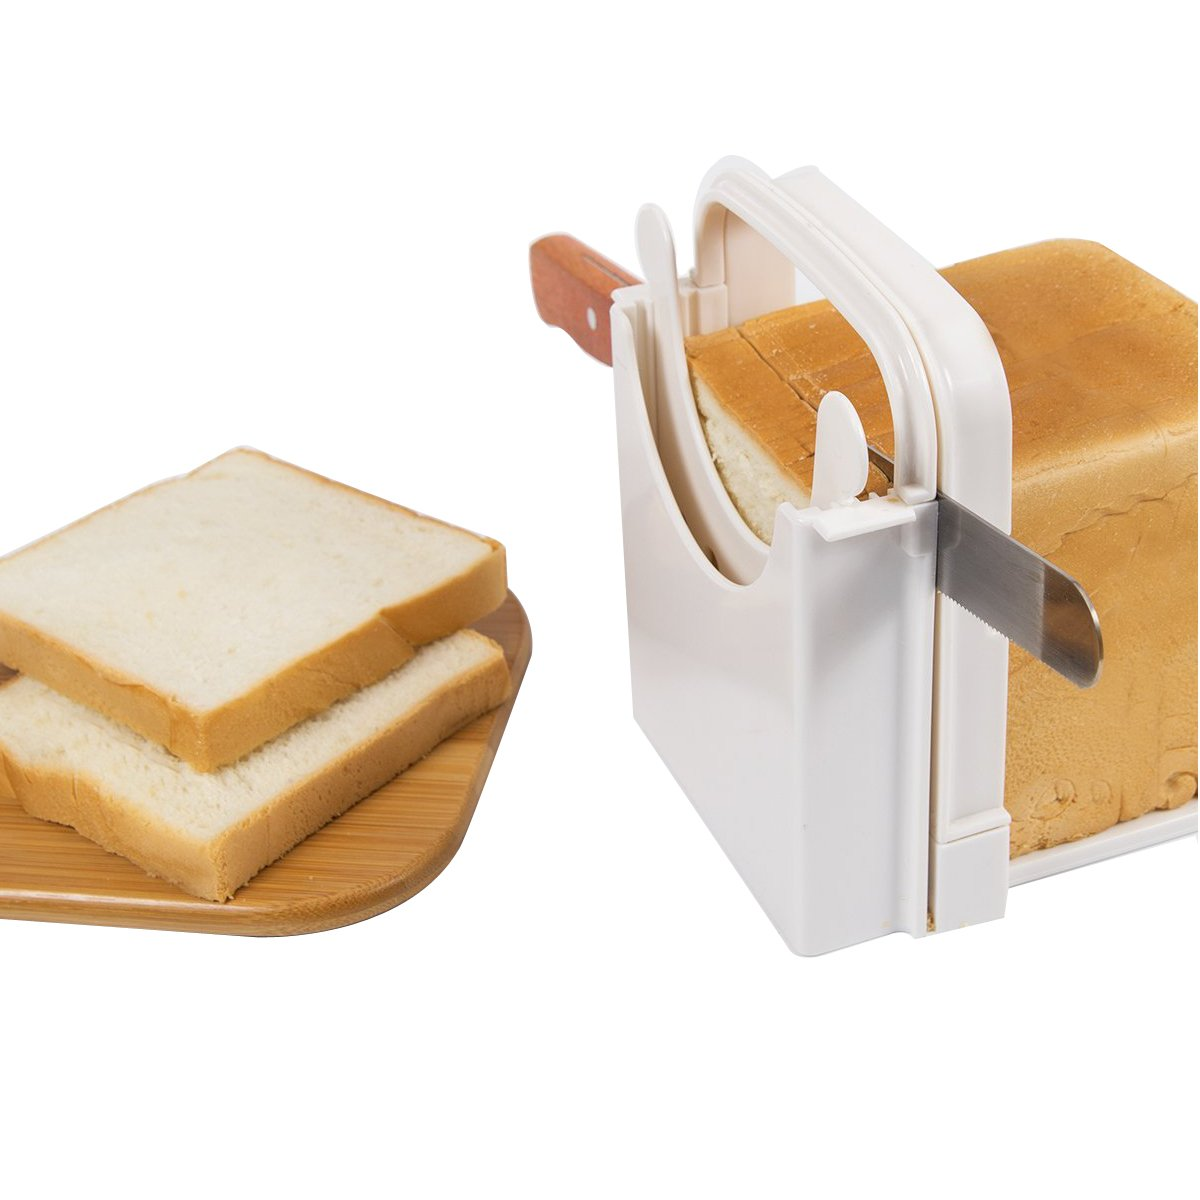 Bread Slicer Customization Toast Slicer Loaf Slicer Cutter for Homemade Bread ABS Environmentally Friendly Plastic Foldable, Bread Cutting Guide and Adjustable with 4 Slice Thicknesses,White by SUMK (Image #5)